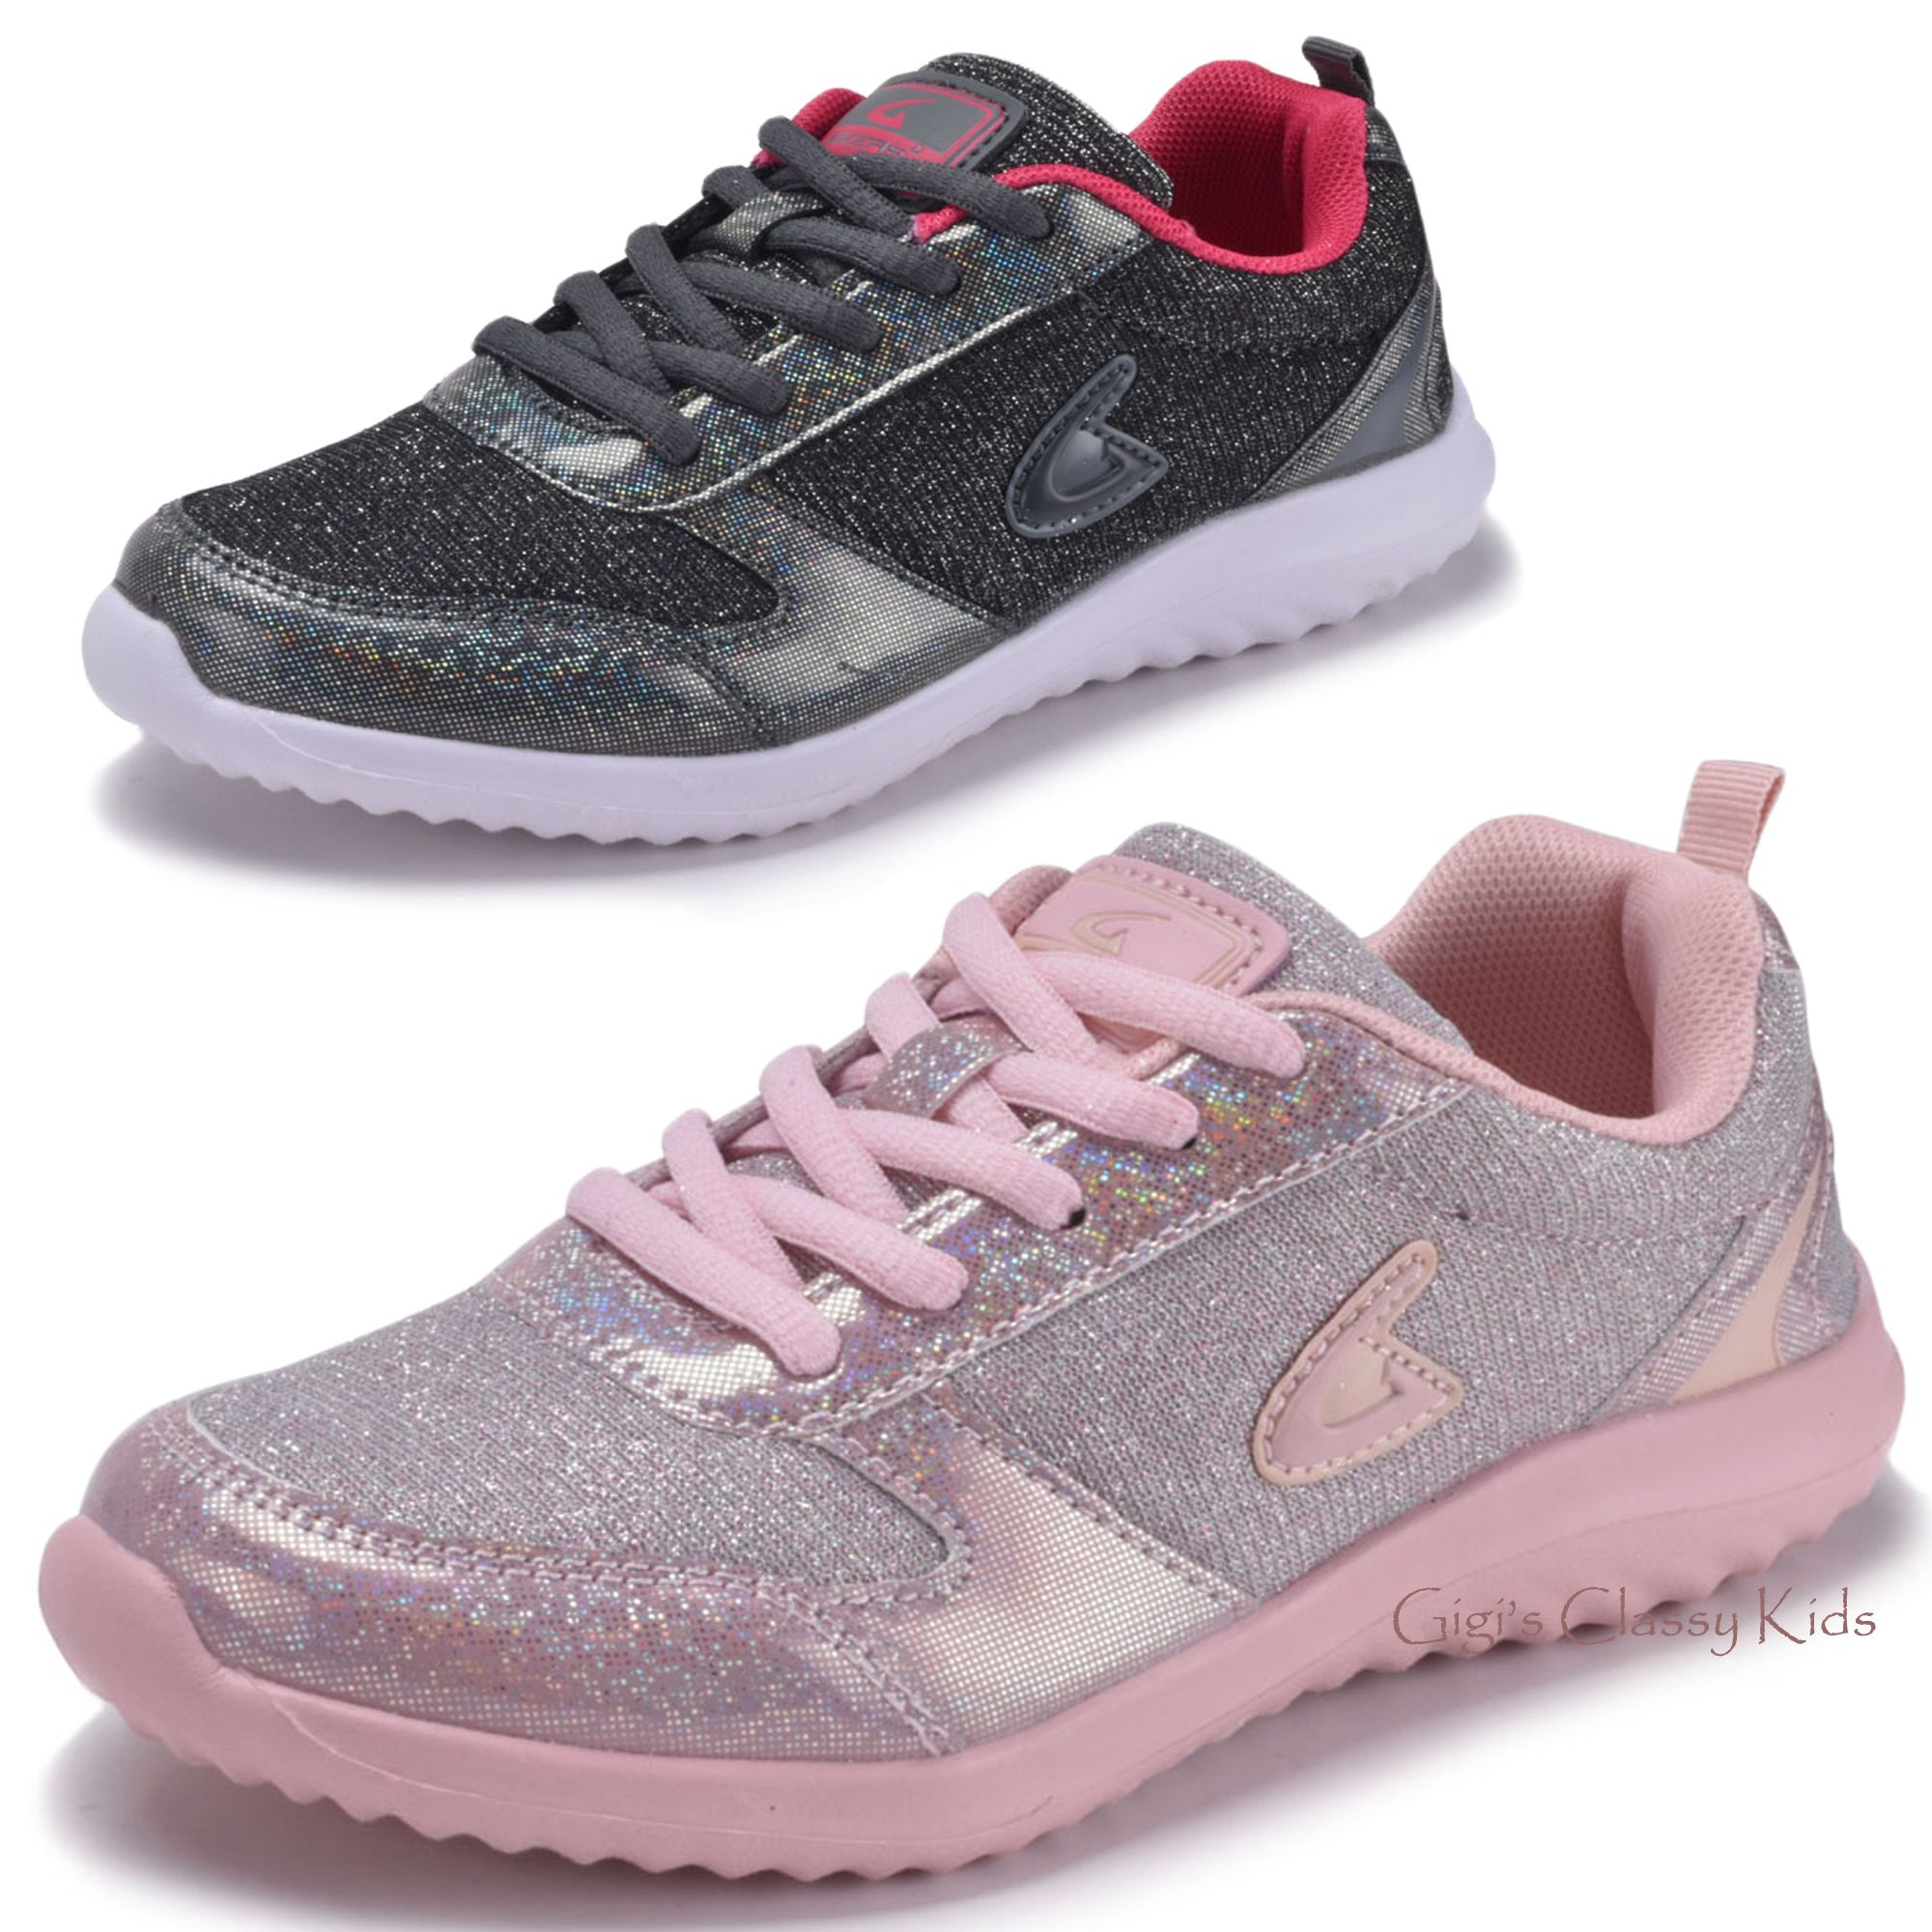 Girls Glitter Sneakers Lace Up Tennis Shoes Kids Youth Athletic Running Fashion Ebay Kid Shoes Lacing Sneakers Glitter Sneakers